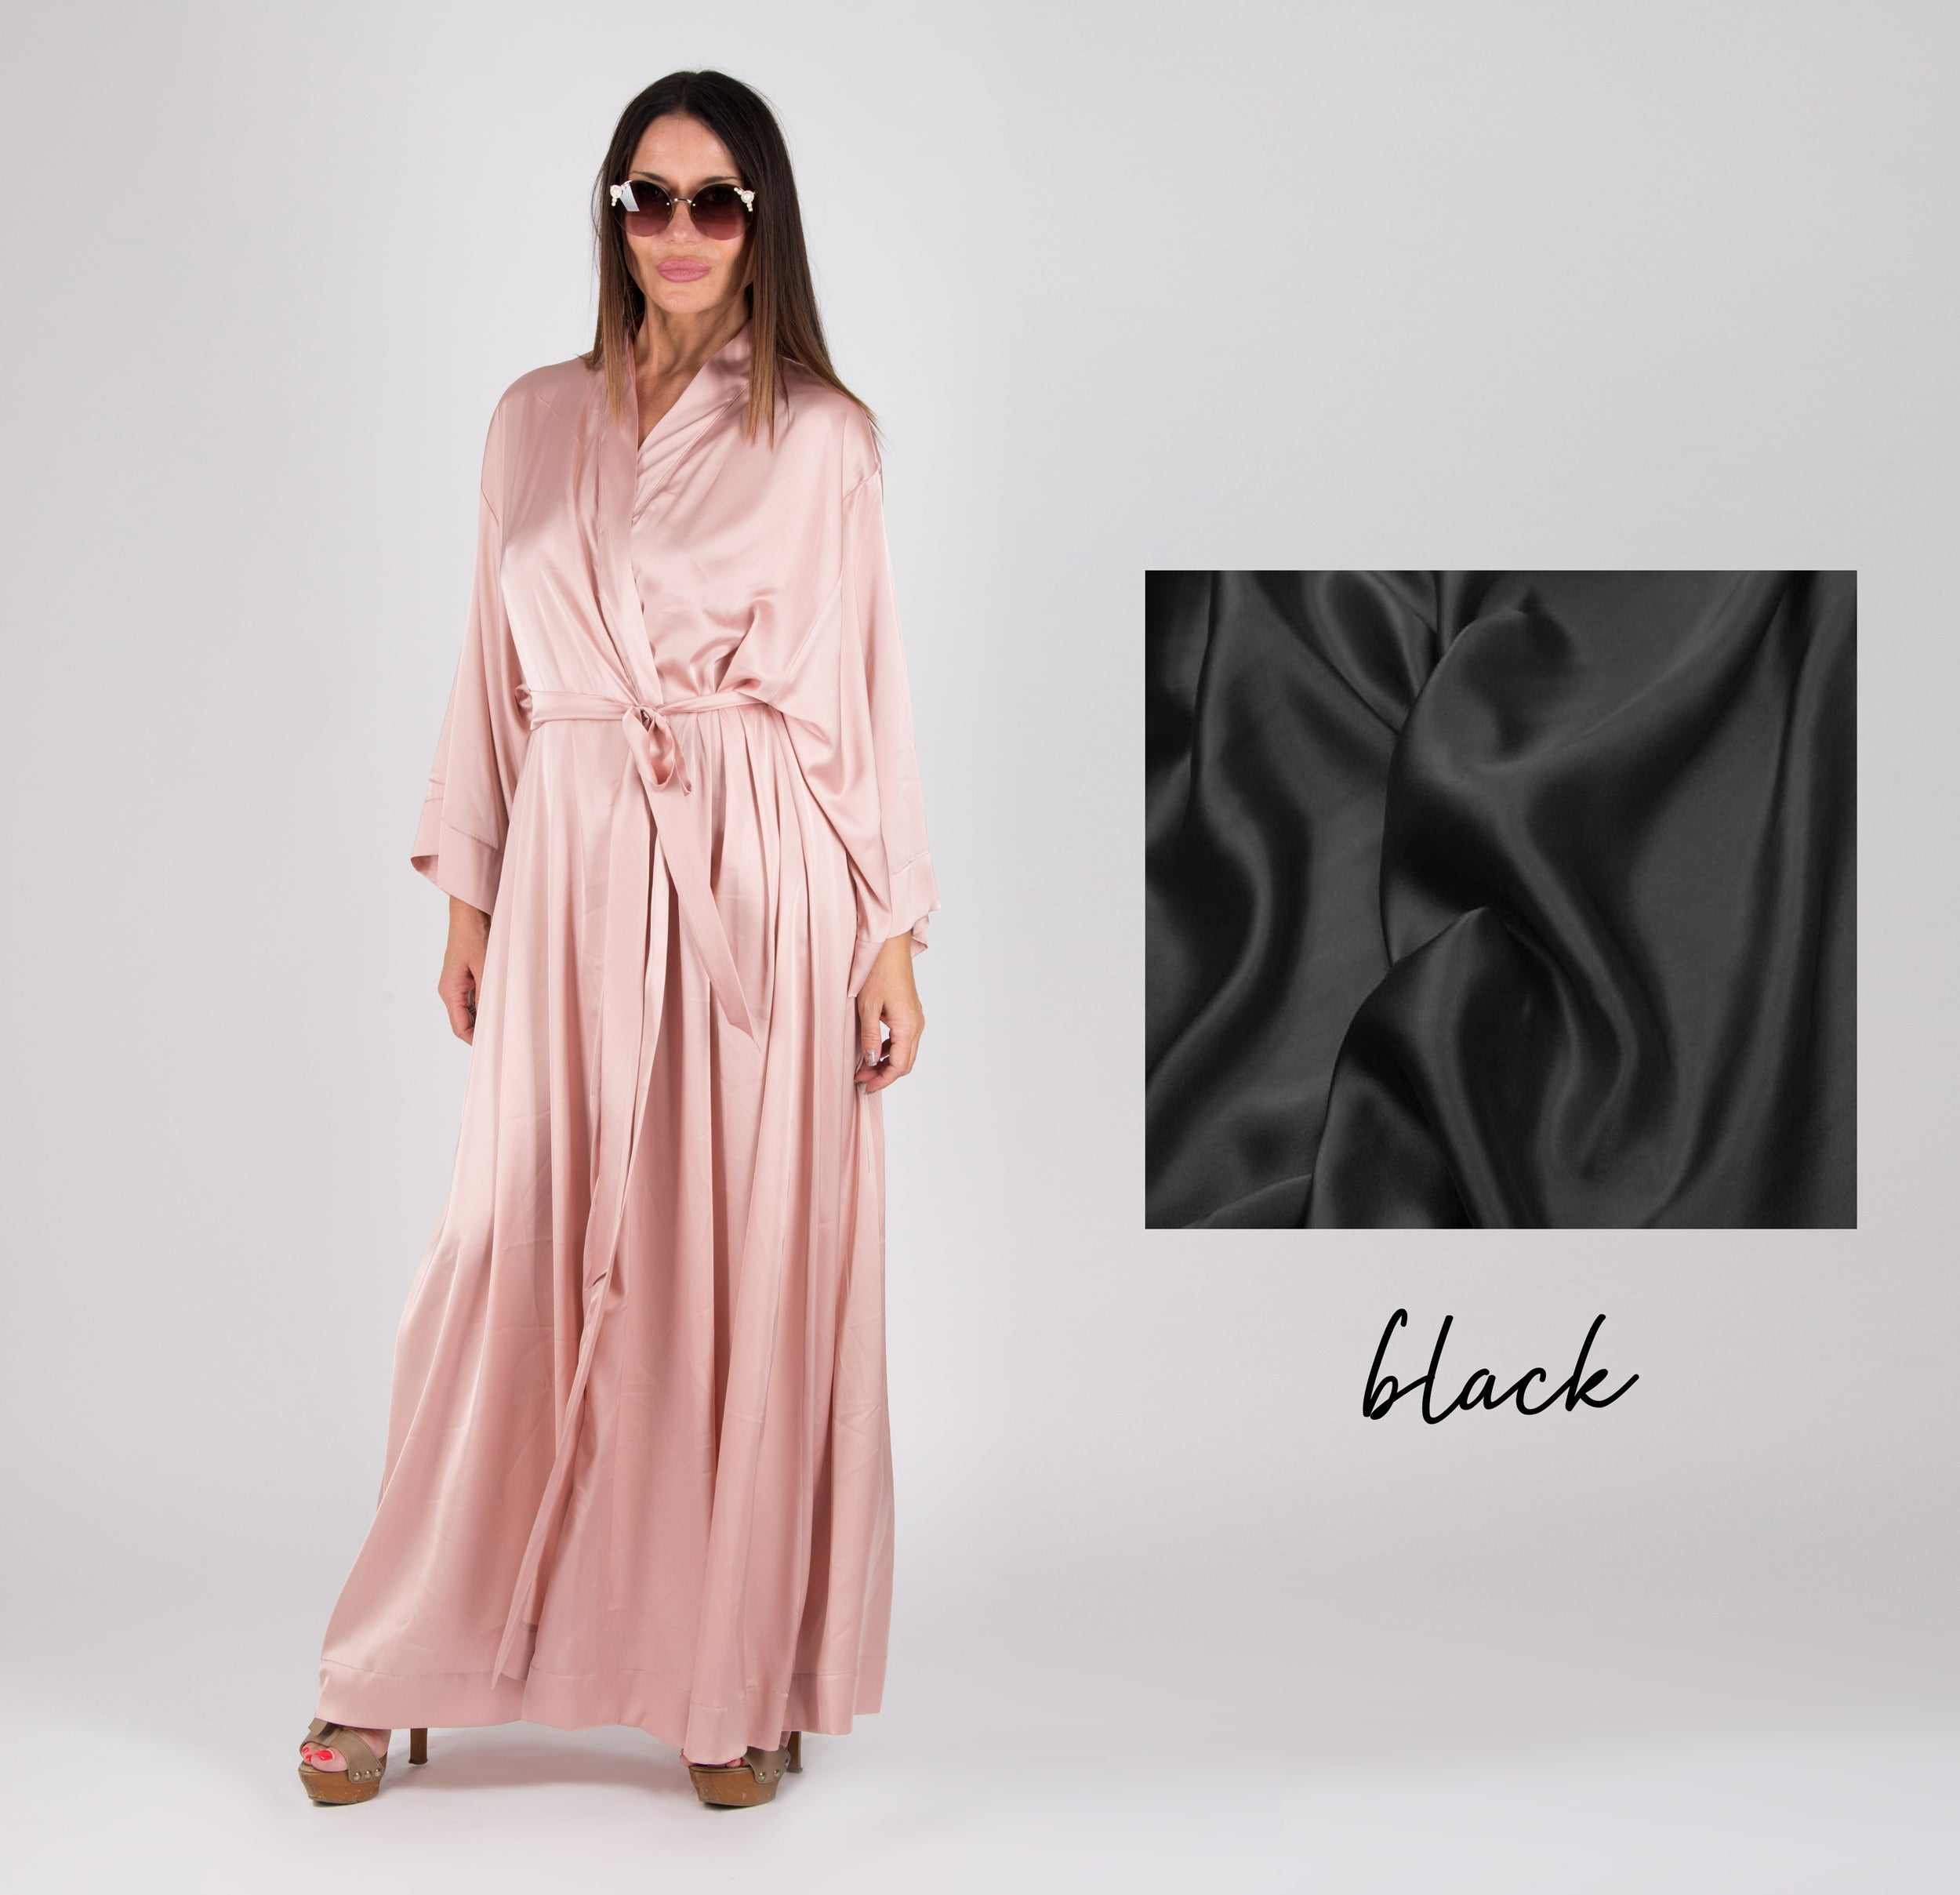 Peach Kimono Bathrobe Sexy Home Clothes, Maxi Kaftan